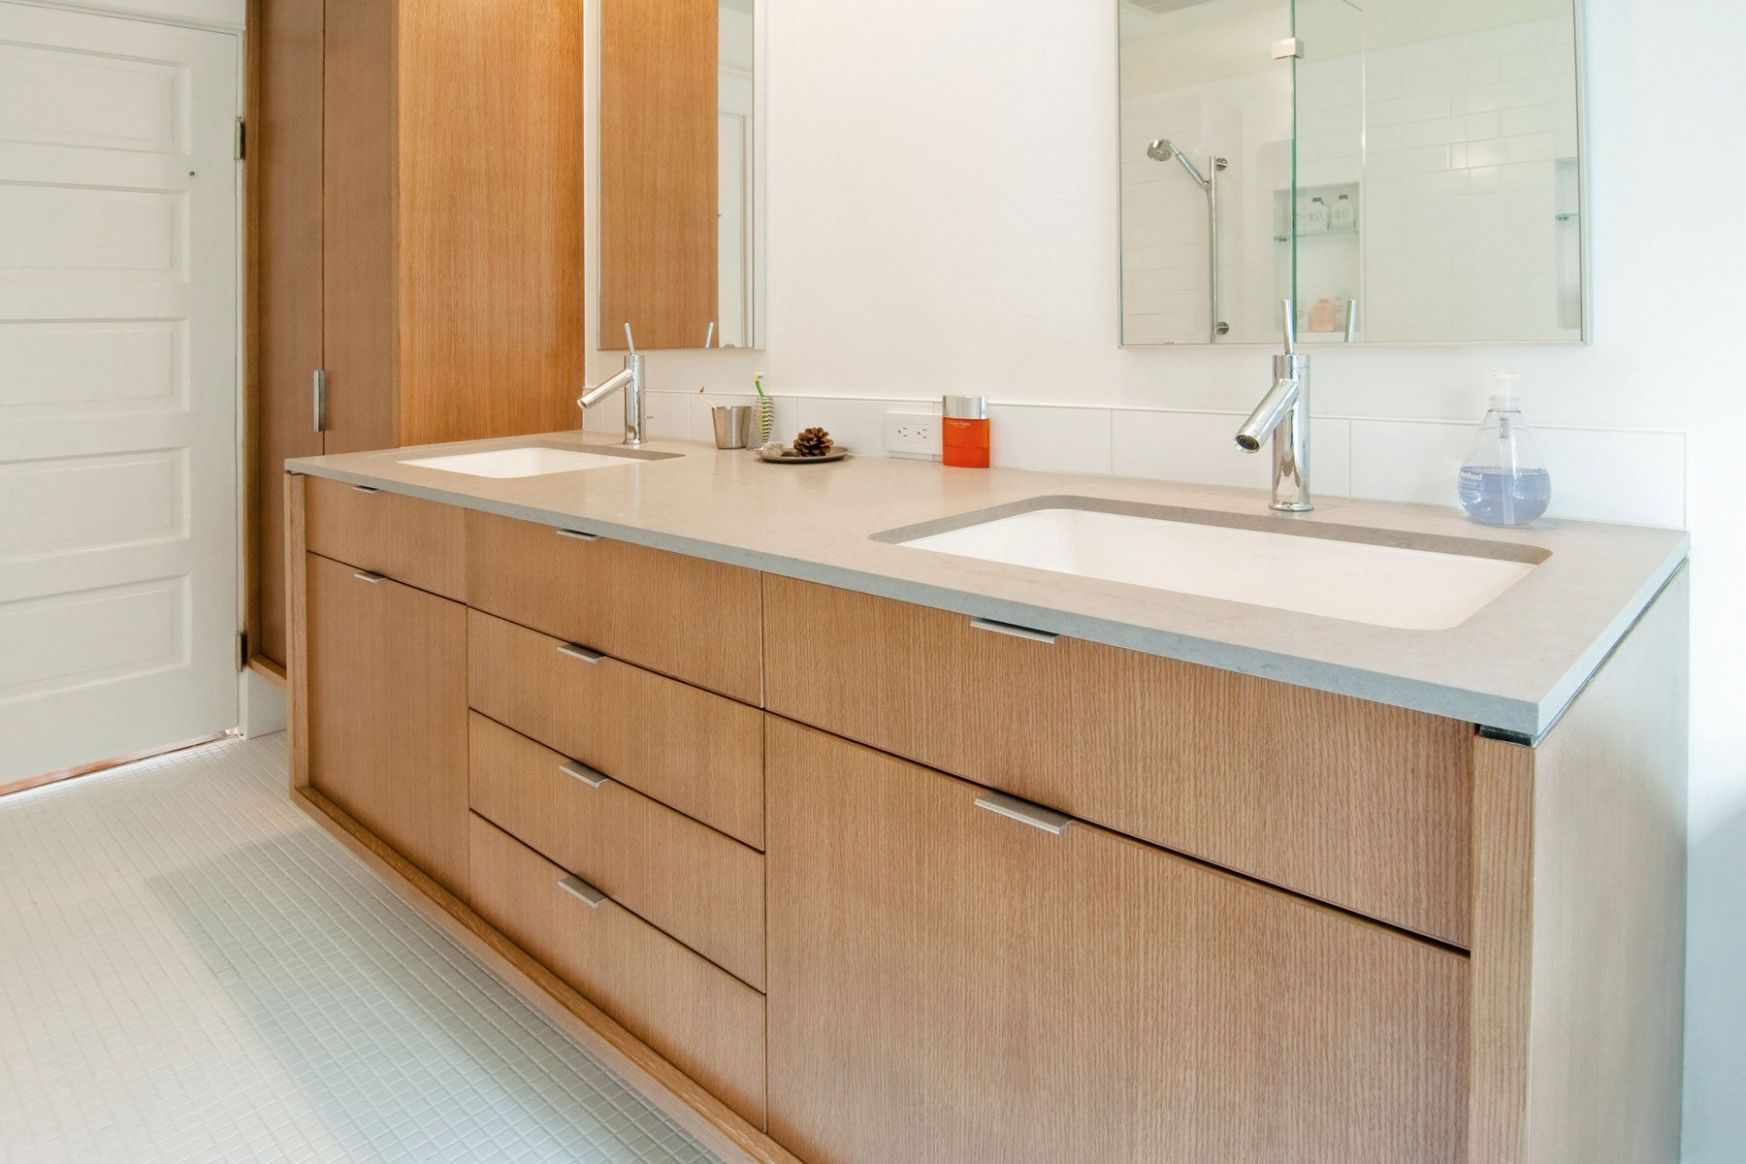 rift sawn white oak bathroom - Google Search (With images) | White ..